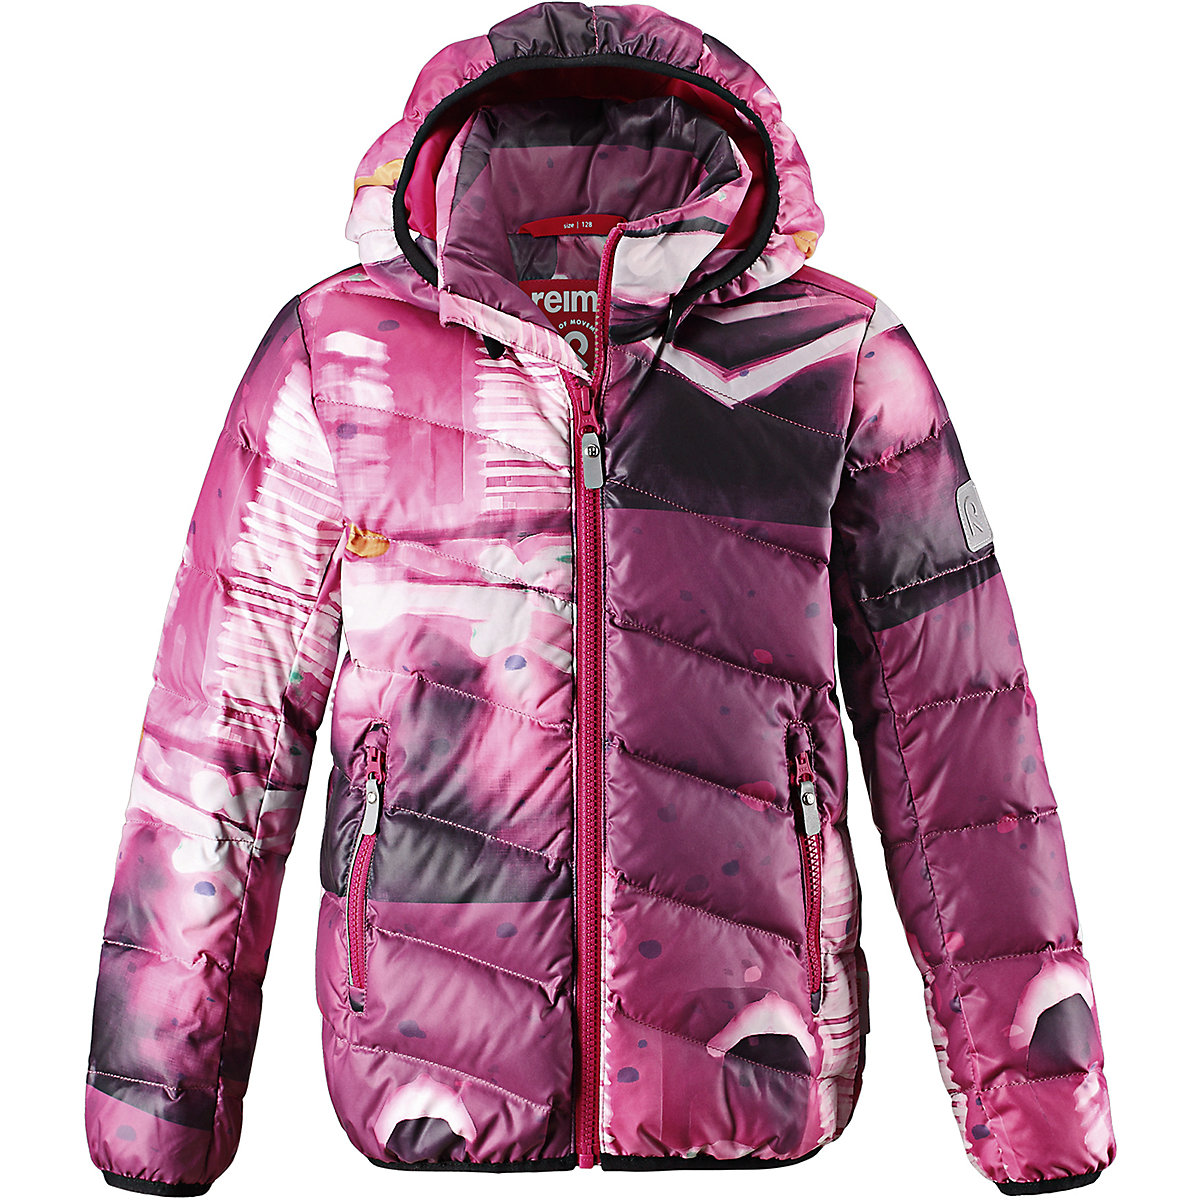 REIMA Jackets 8688912 for girls polyester winter  fur clothes girl vector brand ski jackets men outdoor thermal waterproof snowboard skiing jackets climbing snow winter clothes hxf70002